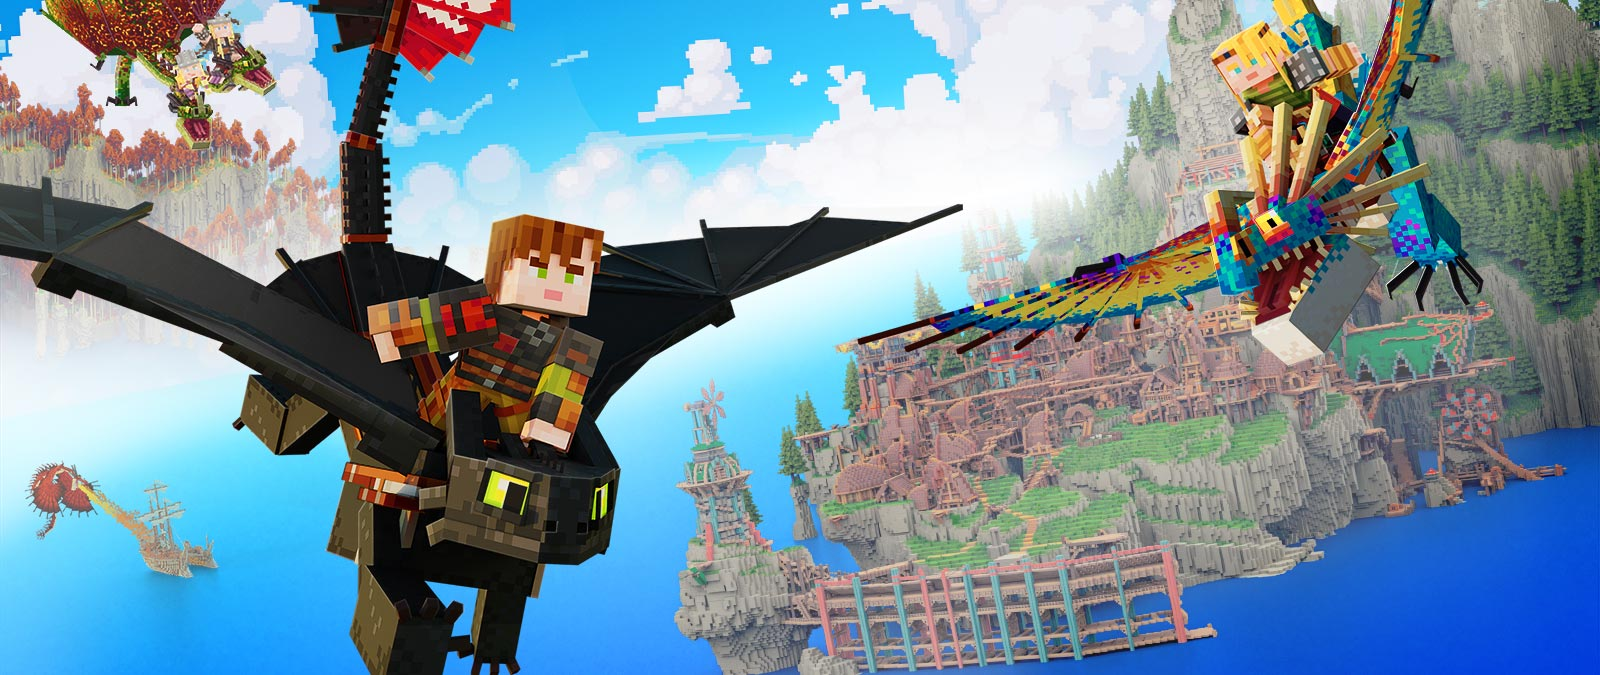 How to Train Your Dragon. Characters on dragons flying above water away from a town on an edge of a cliff